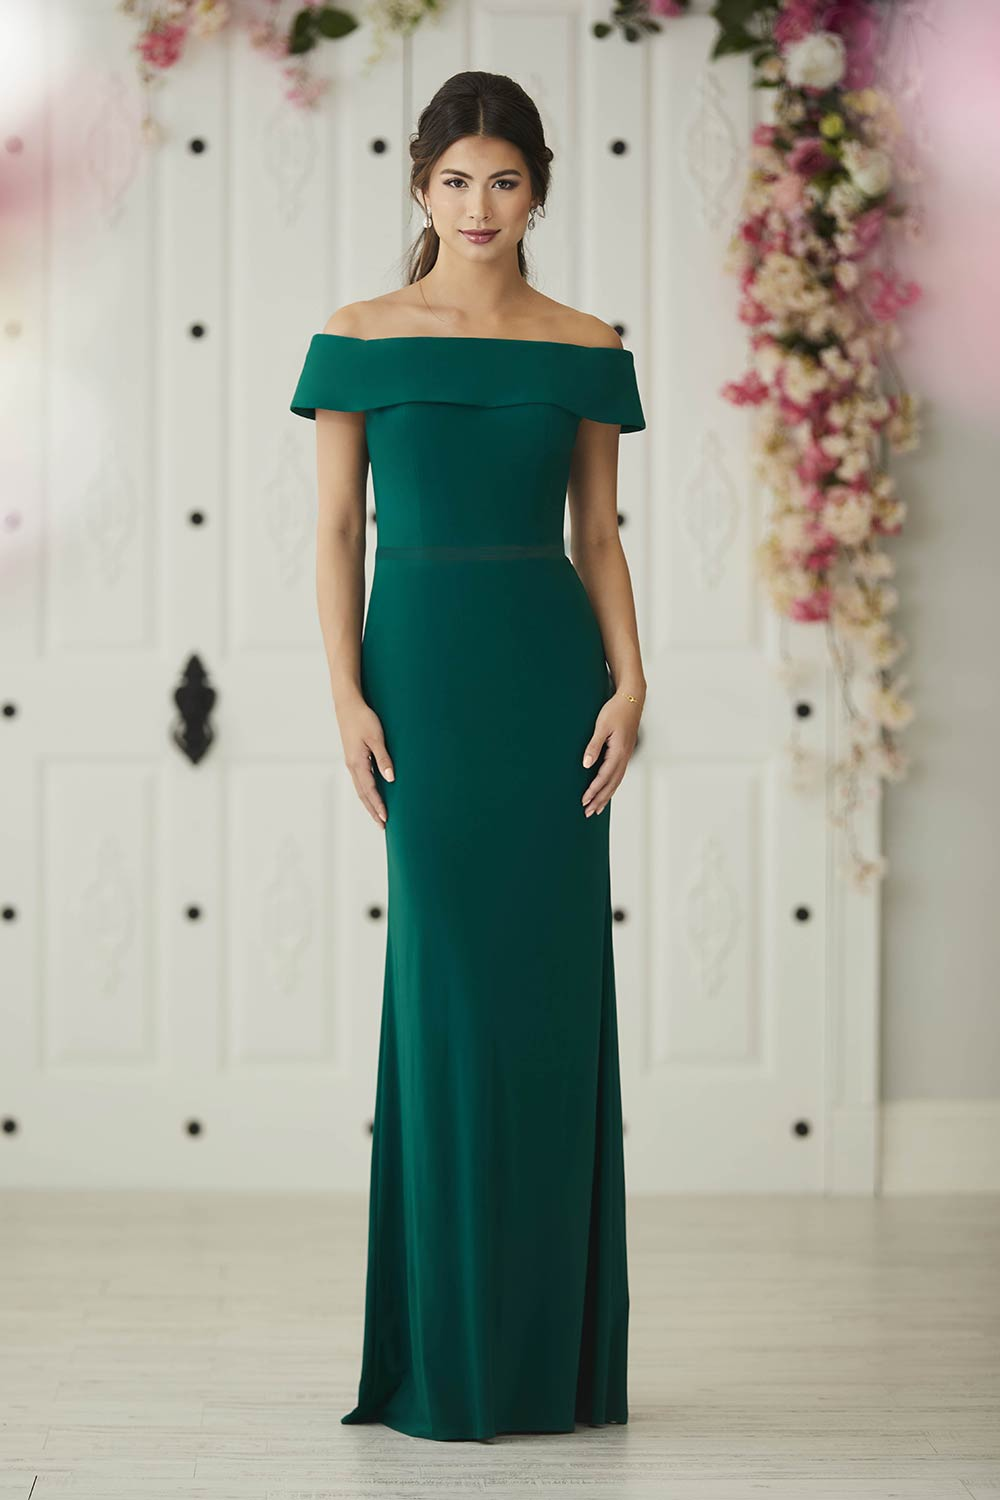 bridesmaid-dresses-jacquelin-bridals-canada-27306